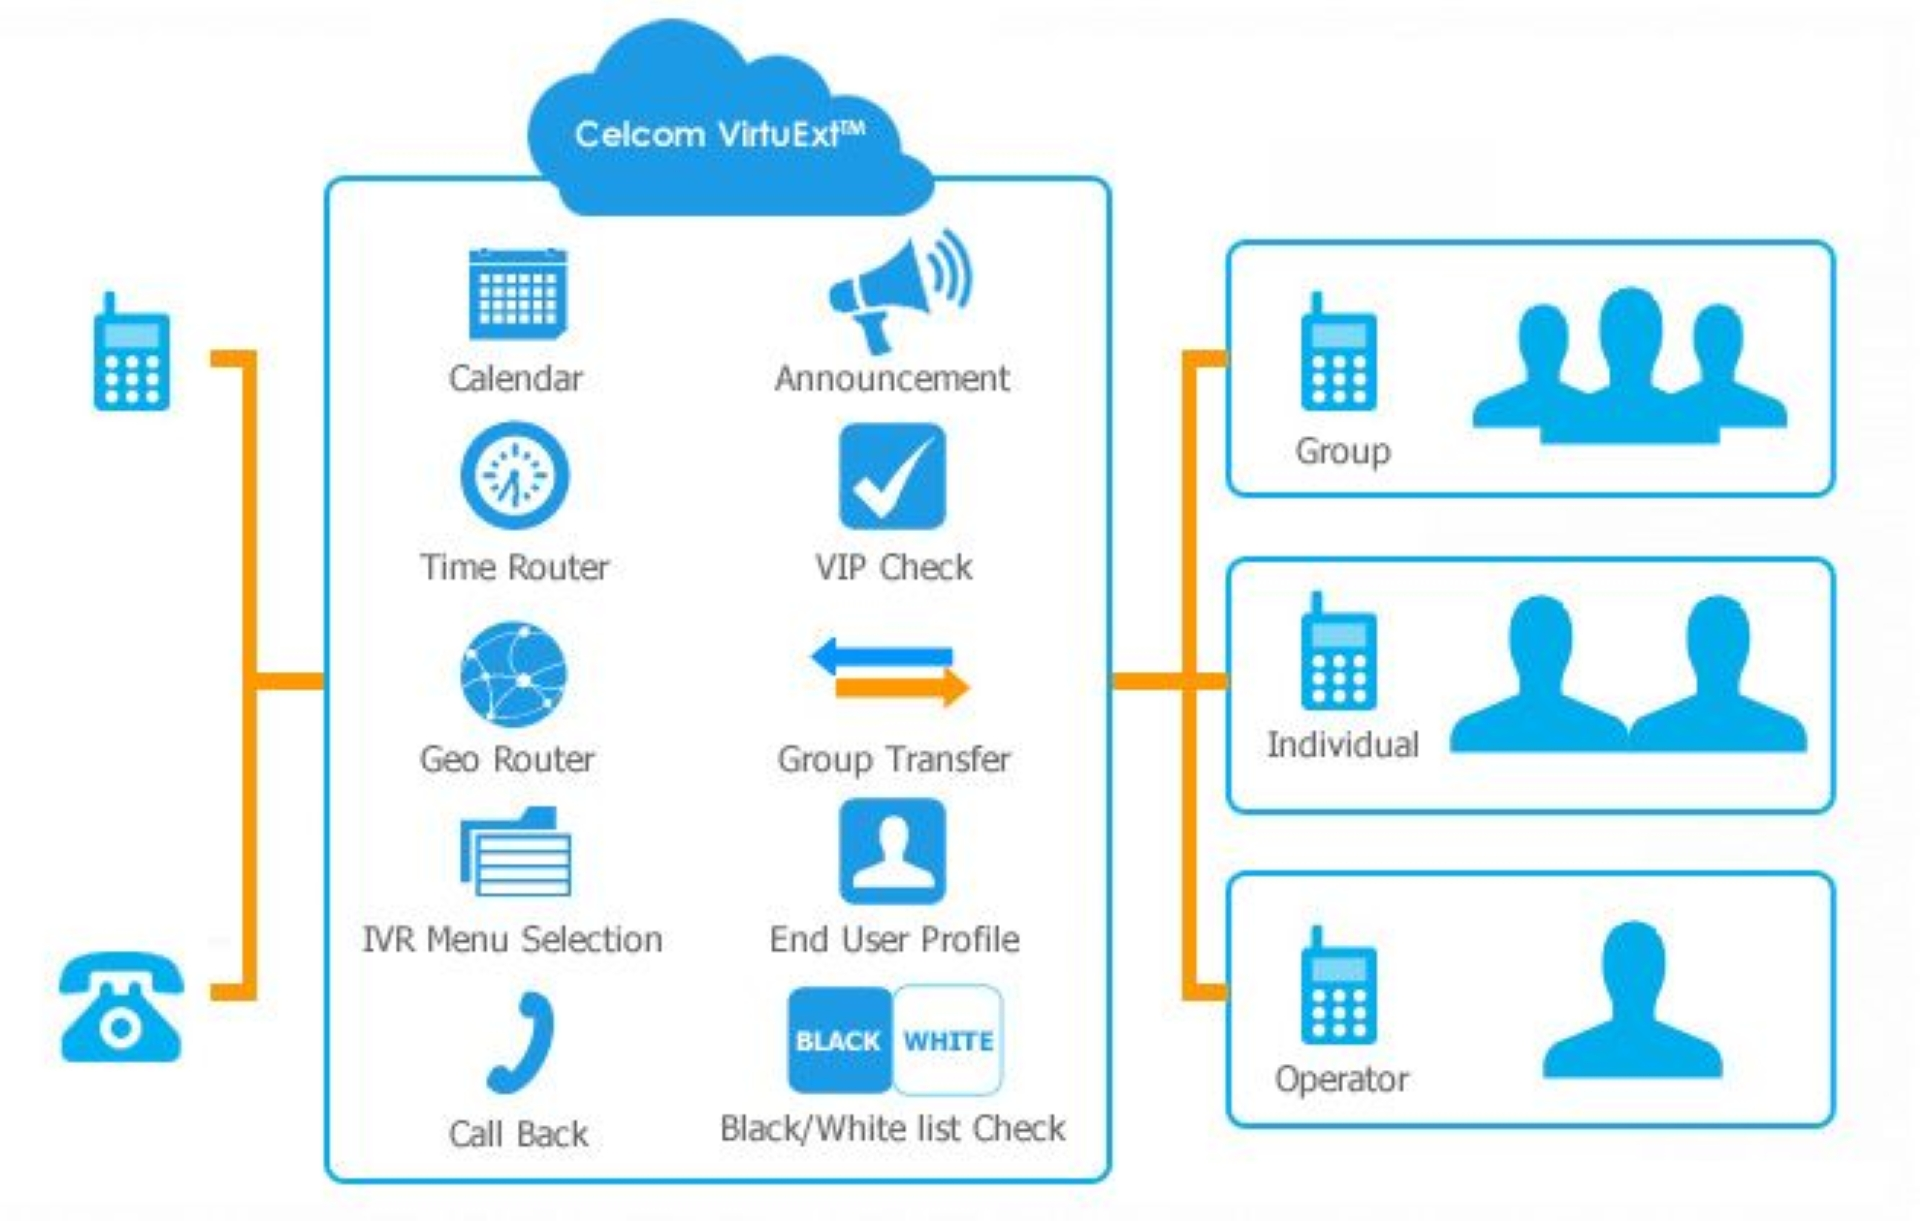 How Celcom VirtuExt works to link you to different parties.